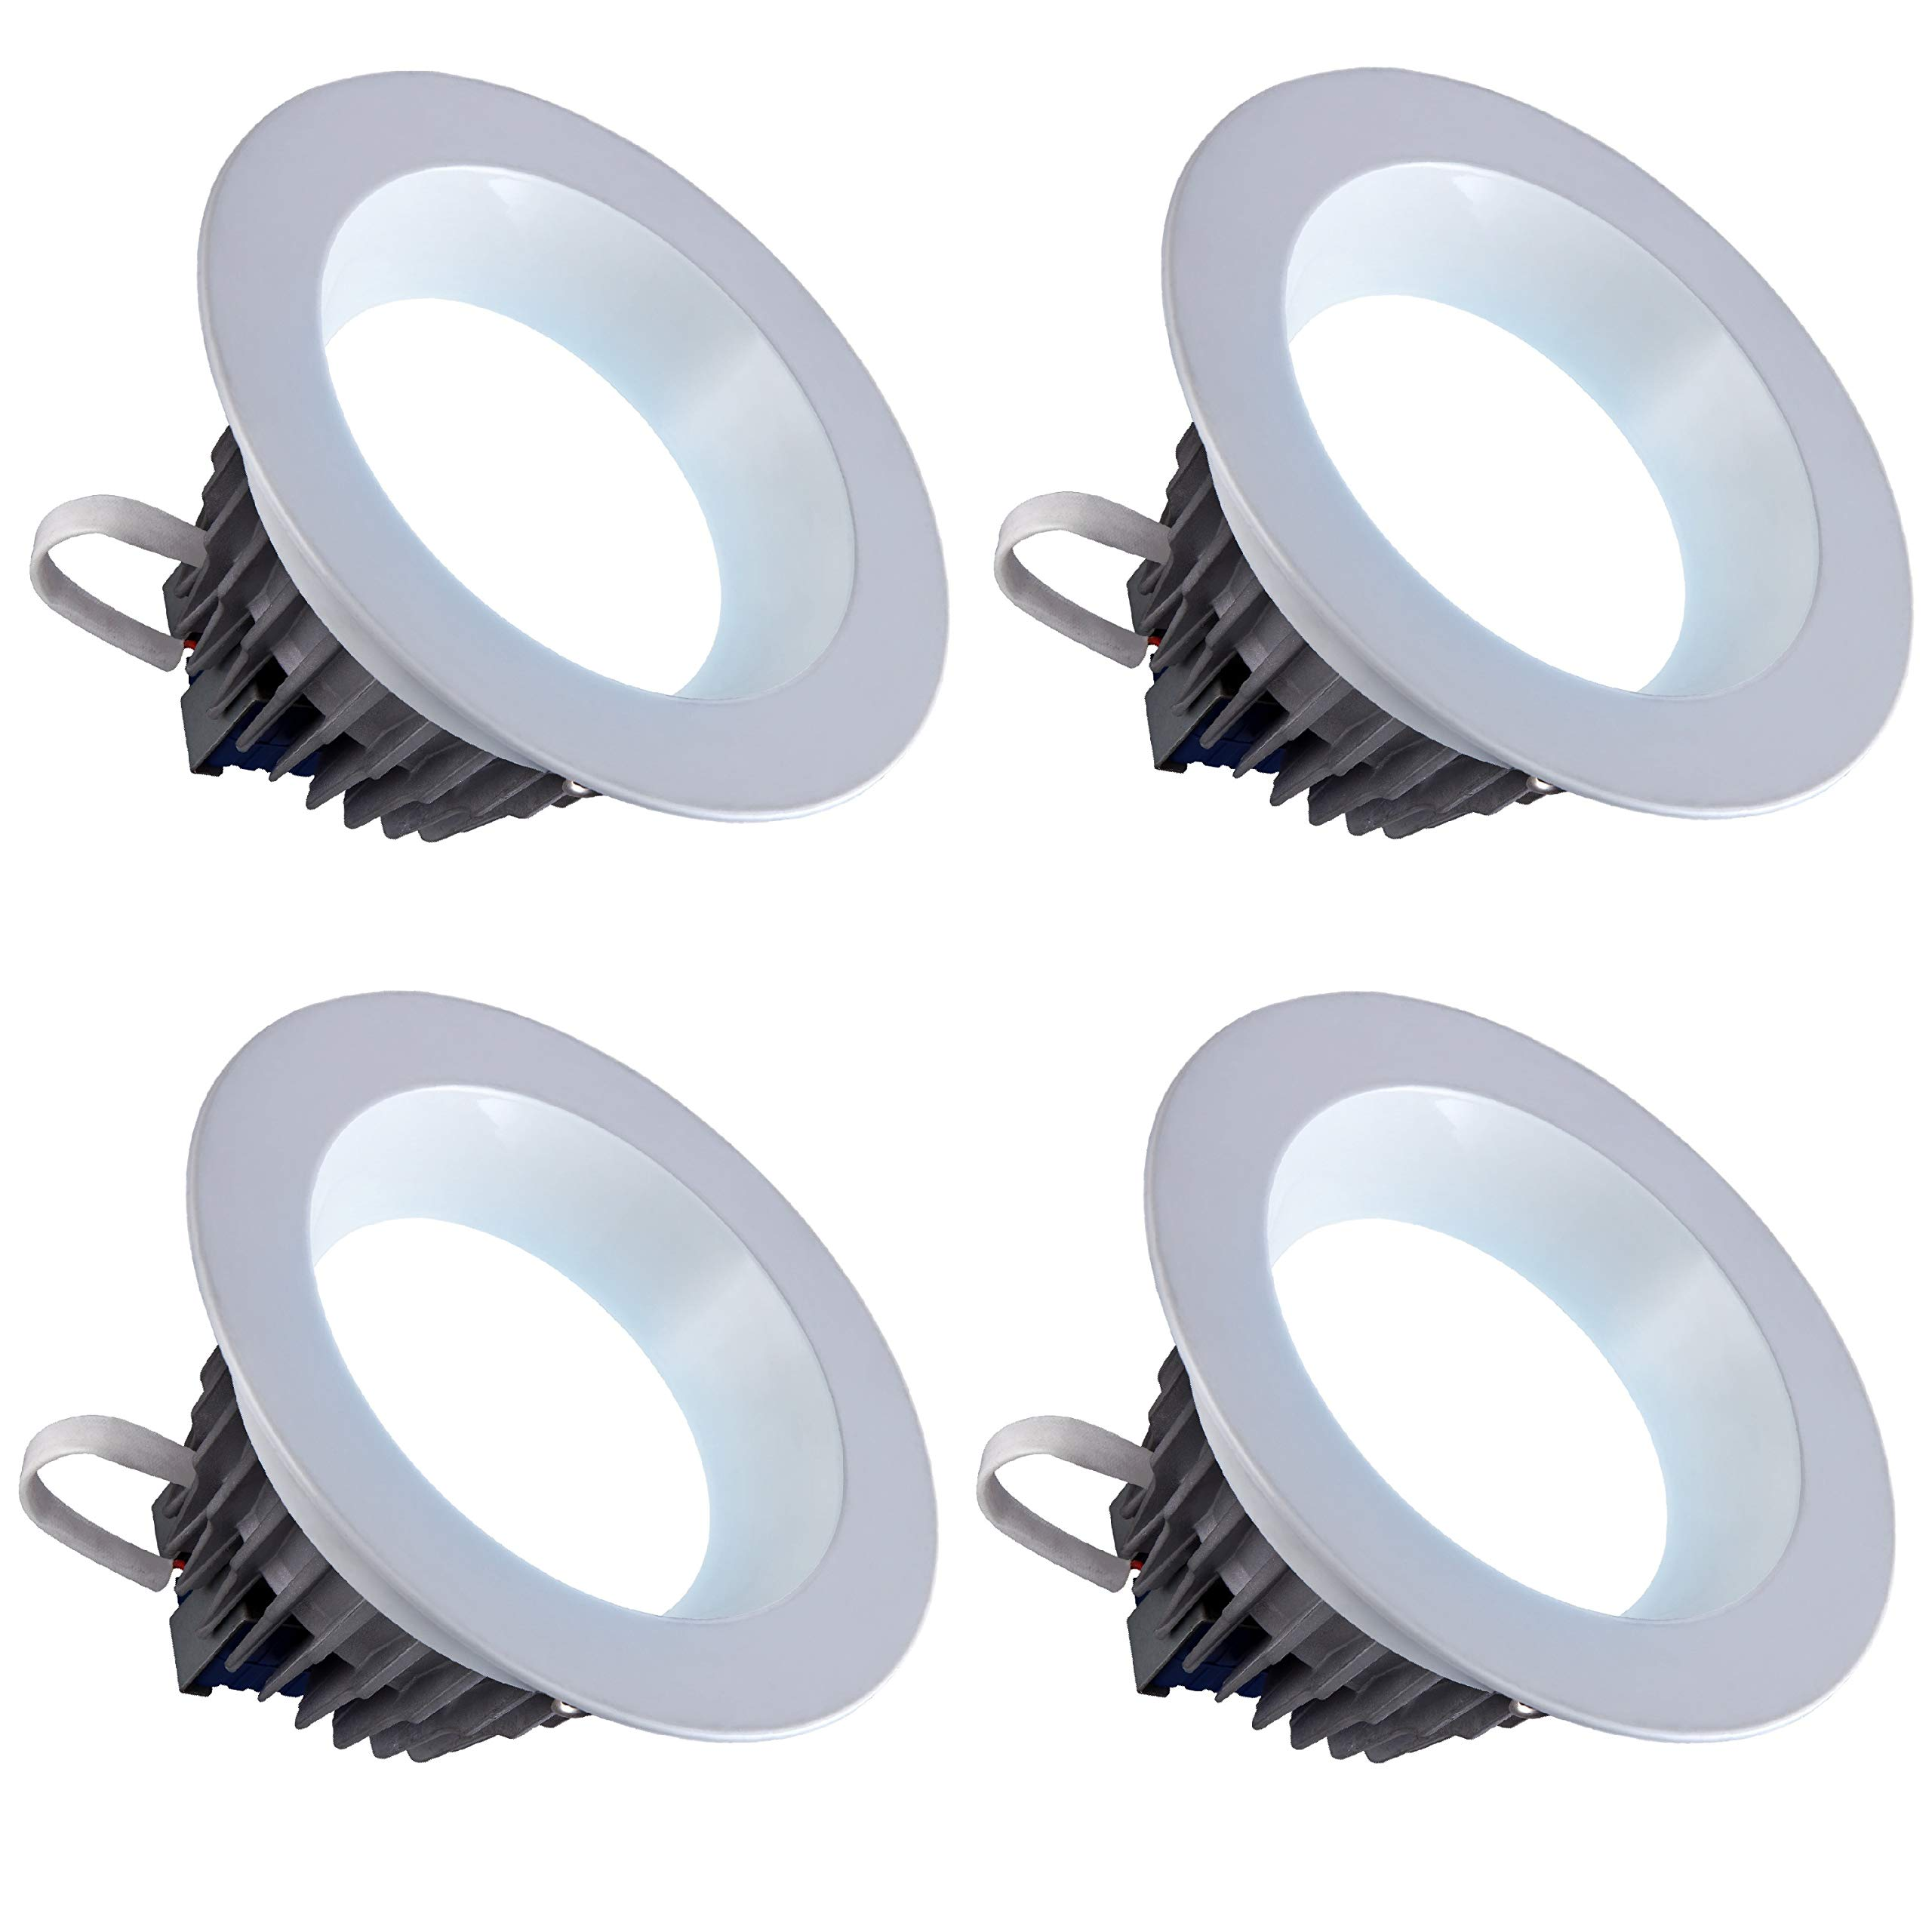 LED 6'' Inch Downlight 18W; 120V; 1500 Lumens; Dimmable; Wet Location Rated CRI>80; Energy Star and Intertek Certified (Day Light 5000K)- 4 Pack by Quest